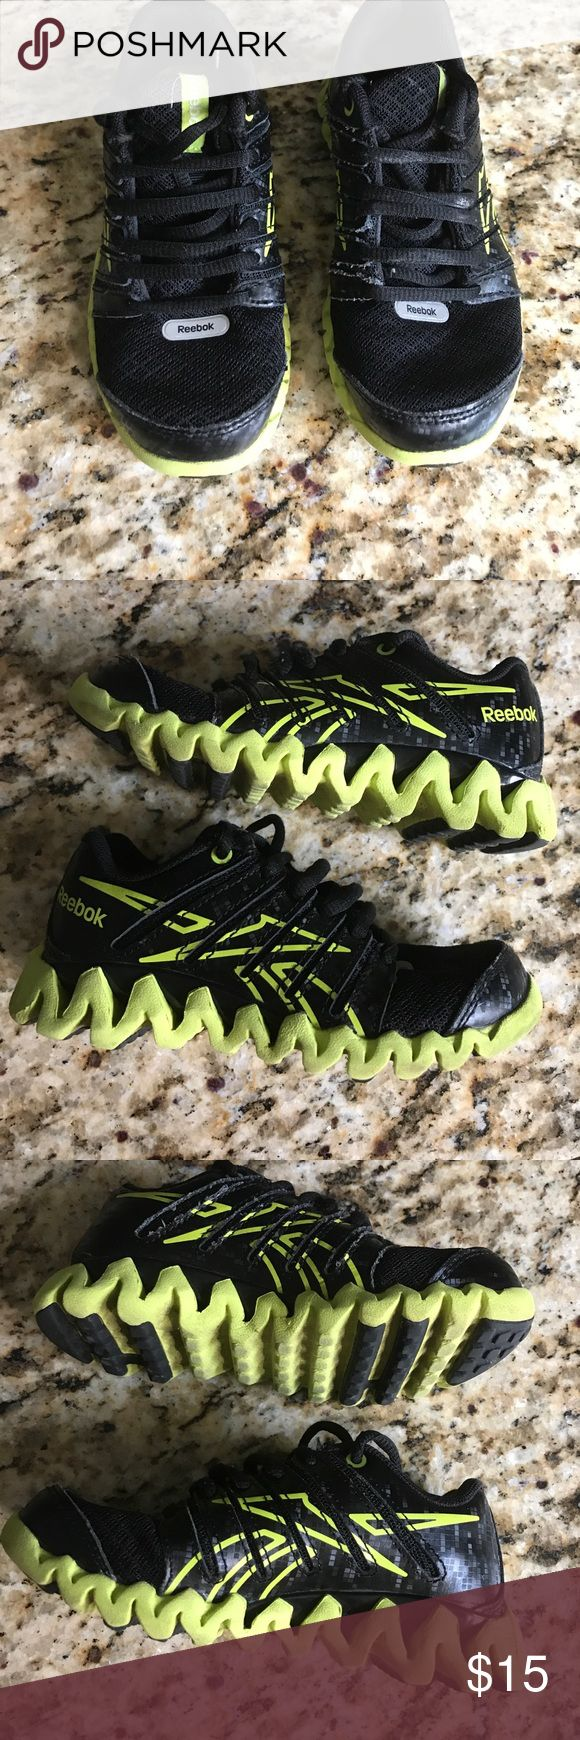 Reebok sneakers for boy Reebok sneakers for boy perfect for school and every day Reebok Shoes Sneakers